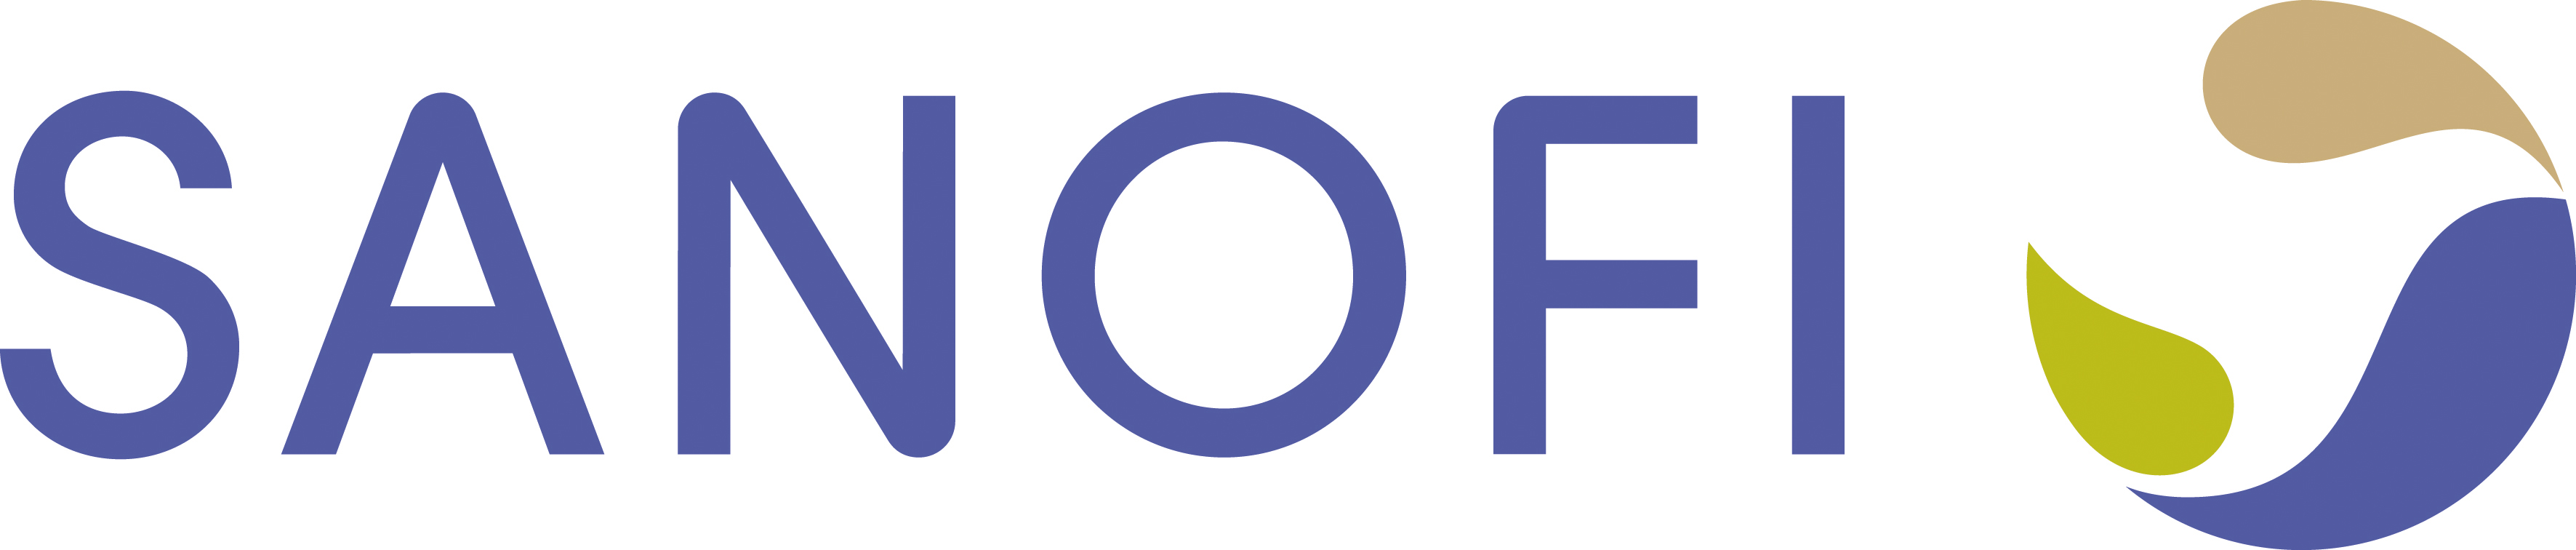 SANOFI Logo Horizontal 2011 4colors